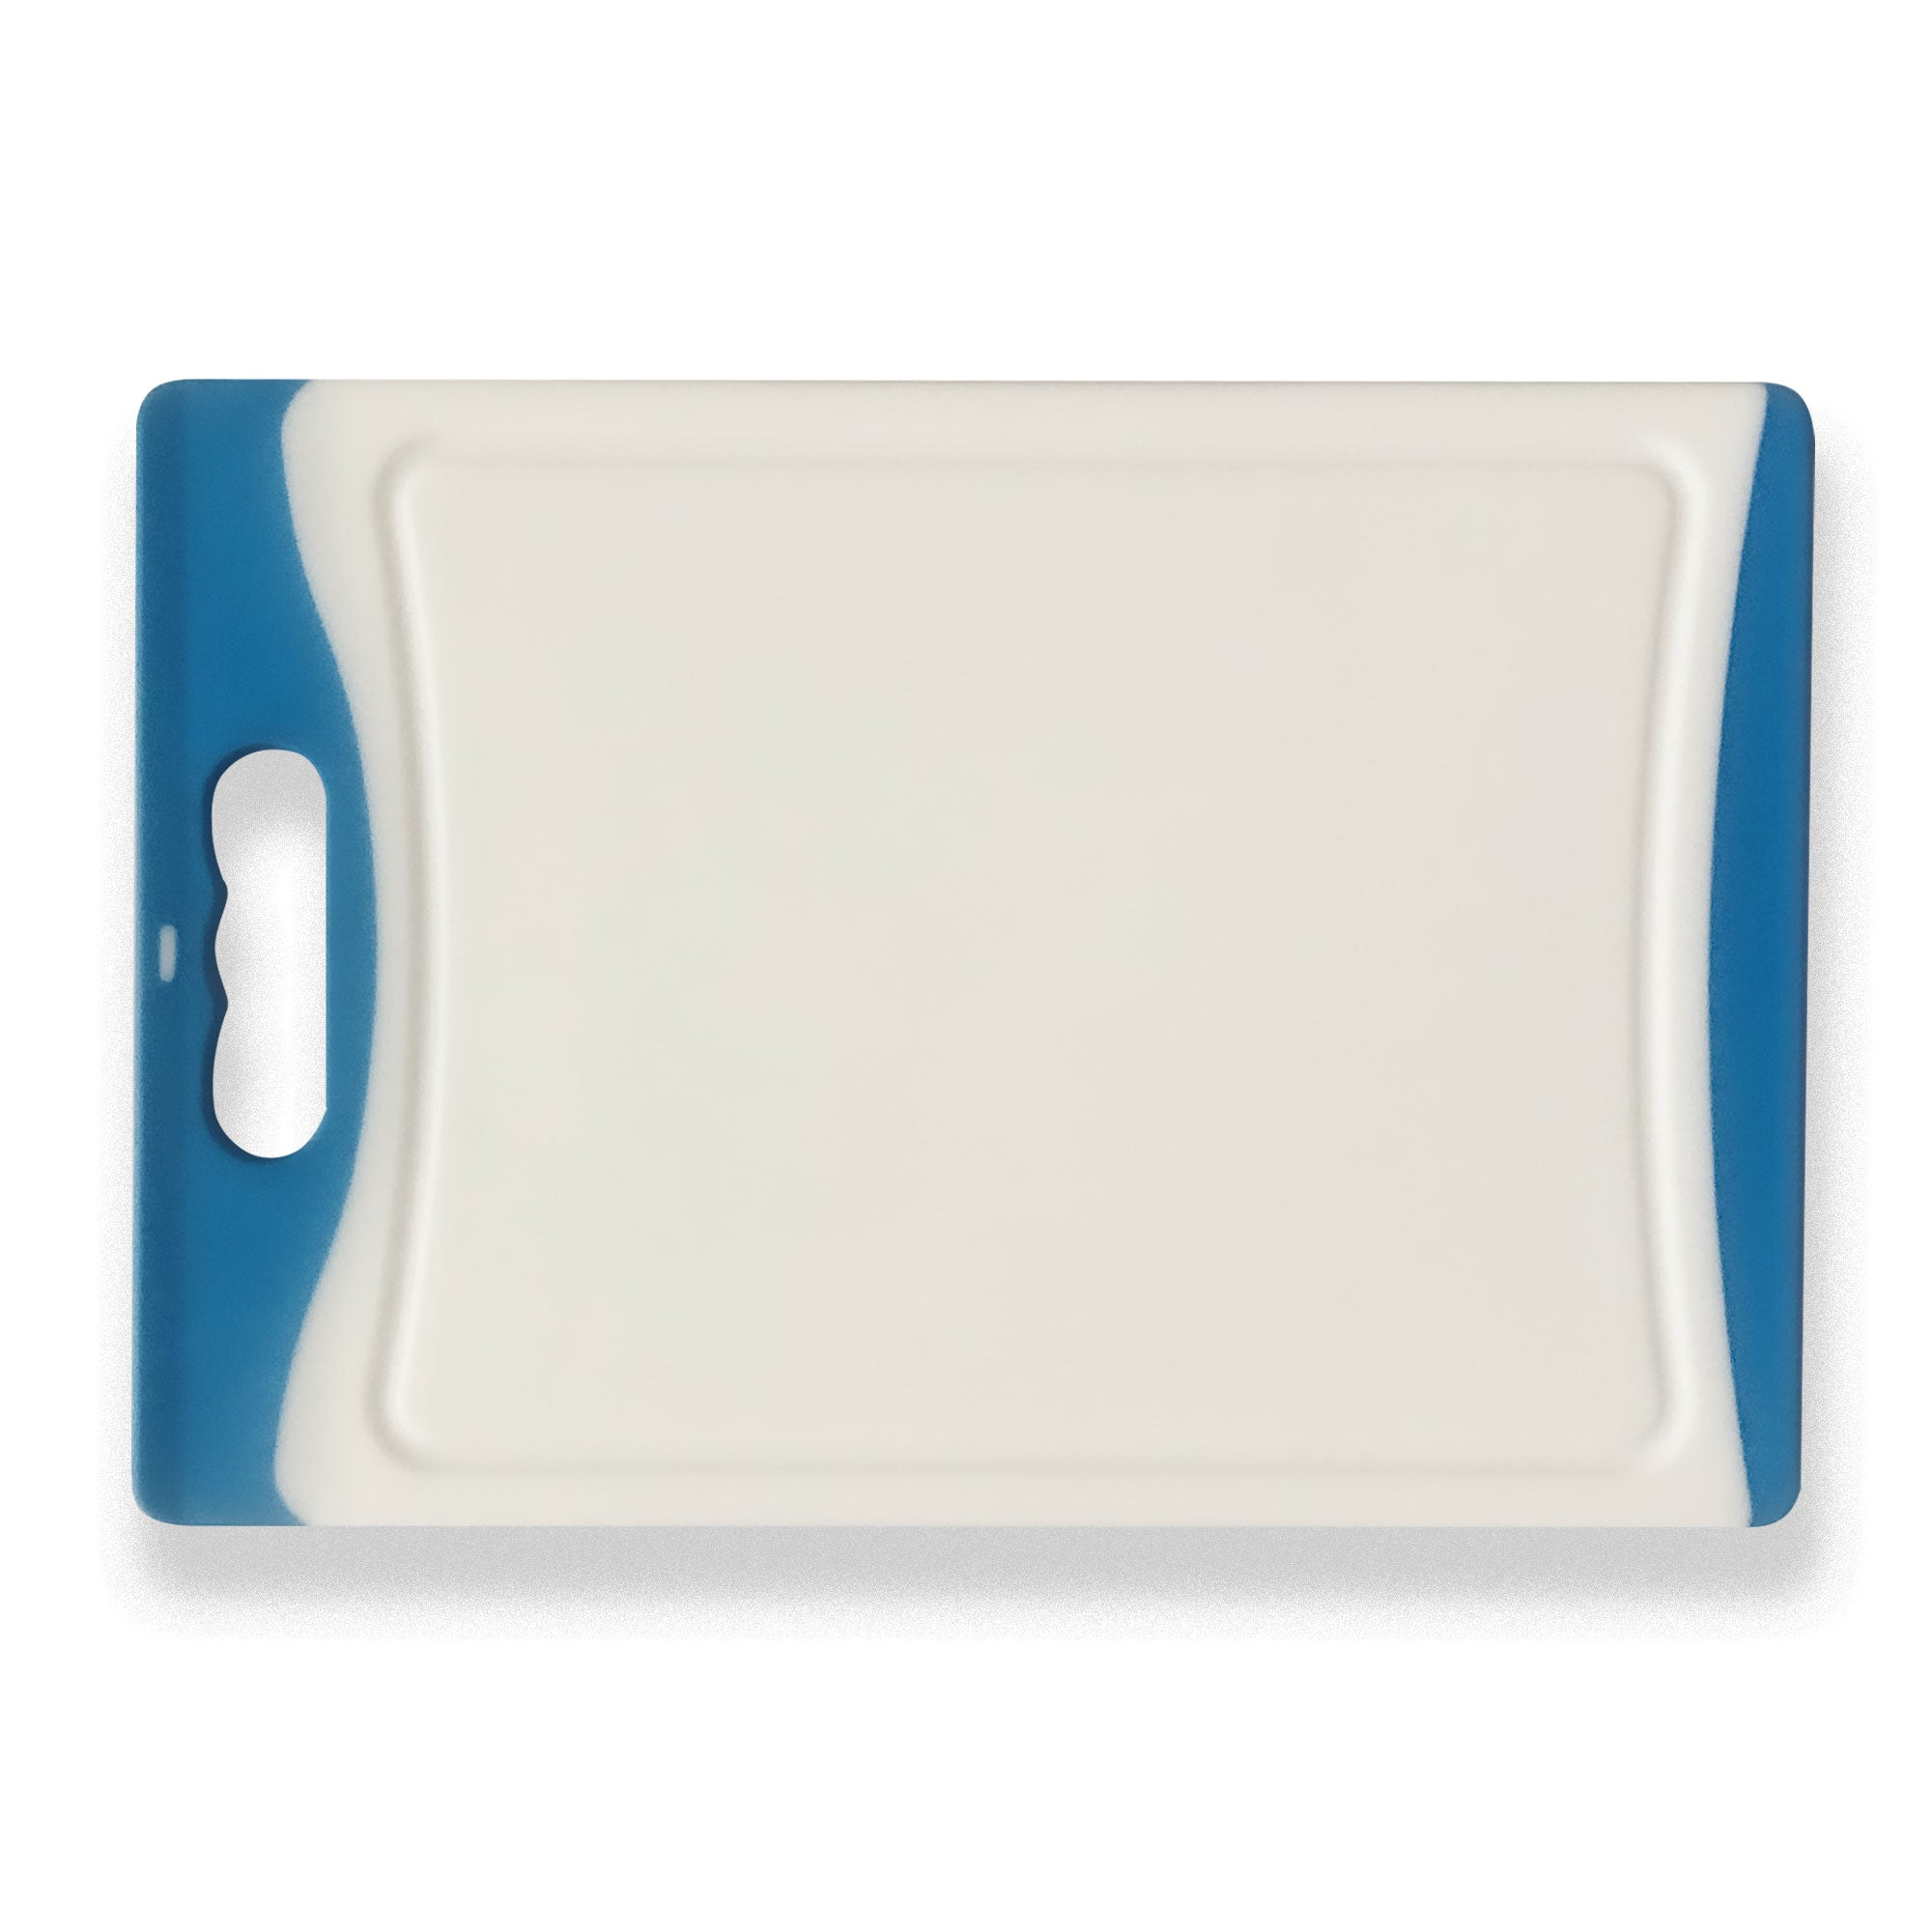 Small Plastic Chopping Board - Blue 11.4""